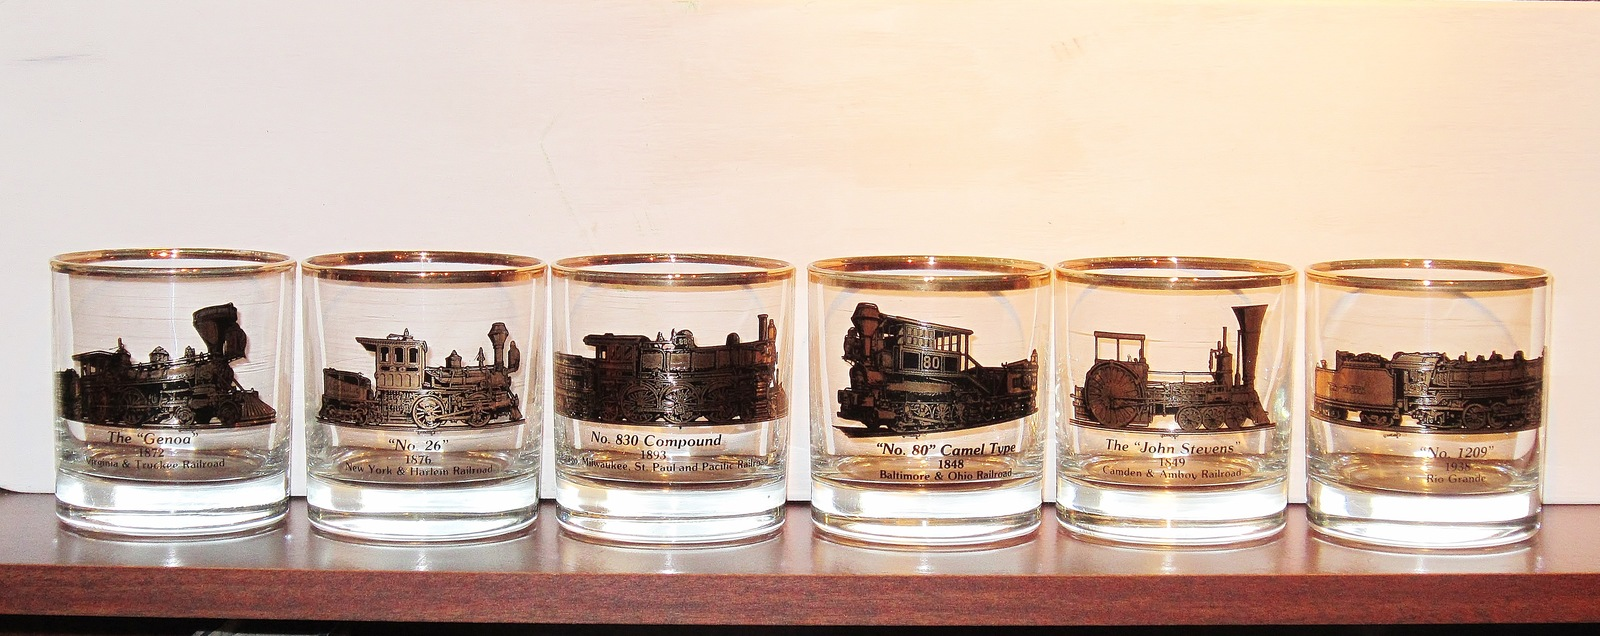 Railroad Barware Cocktail Glasses Steam Engine Locomotive Set of 6 Different Vtg